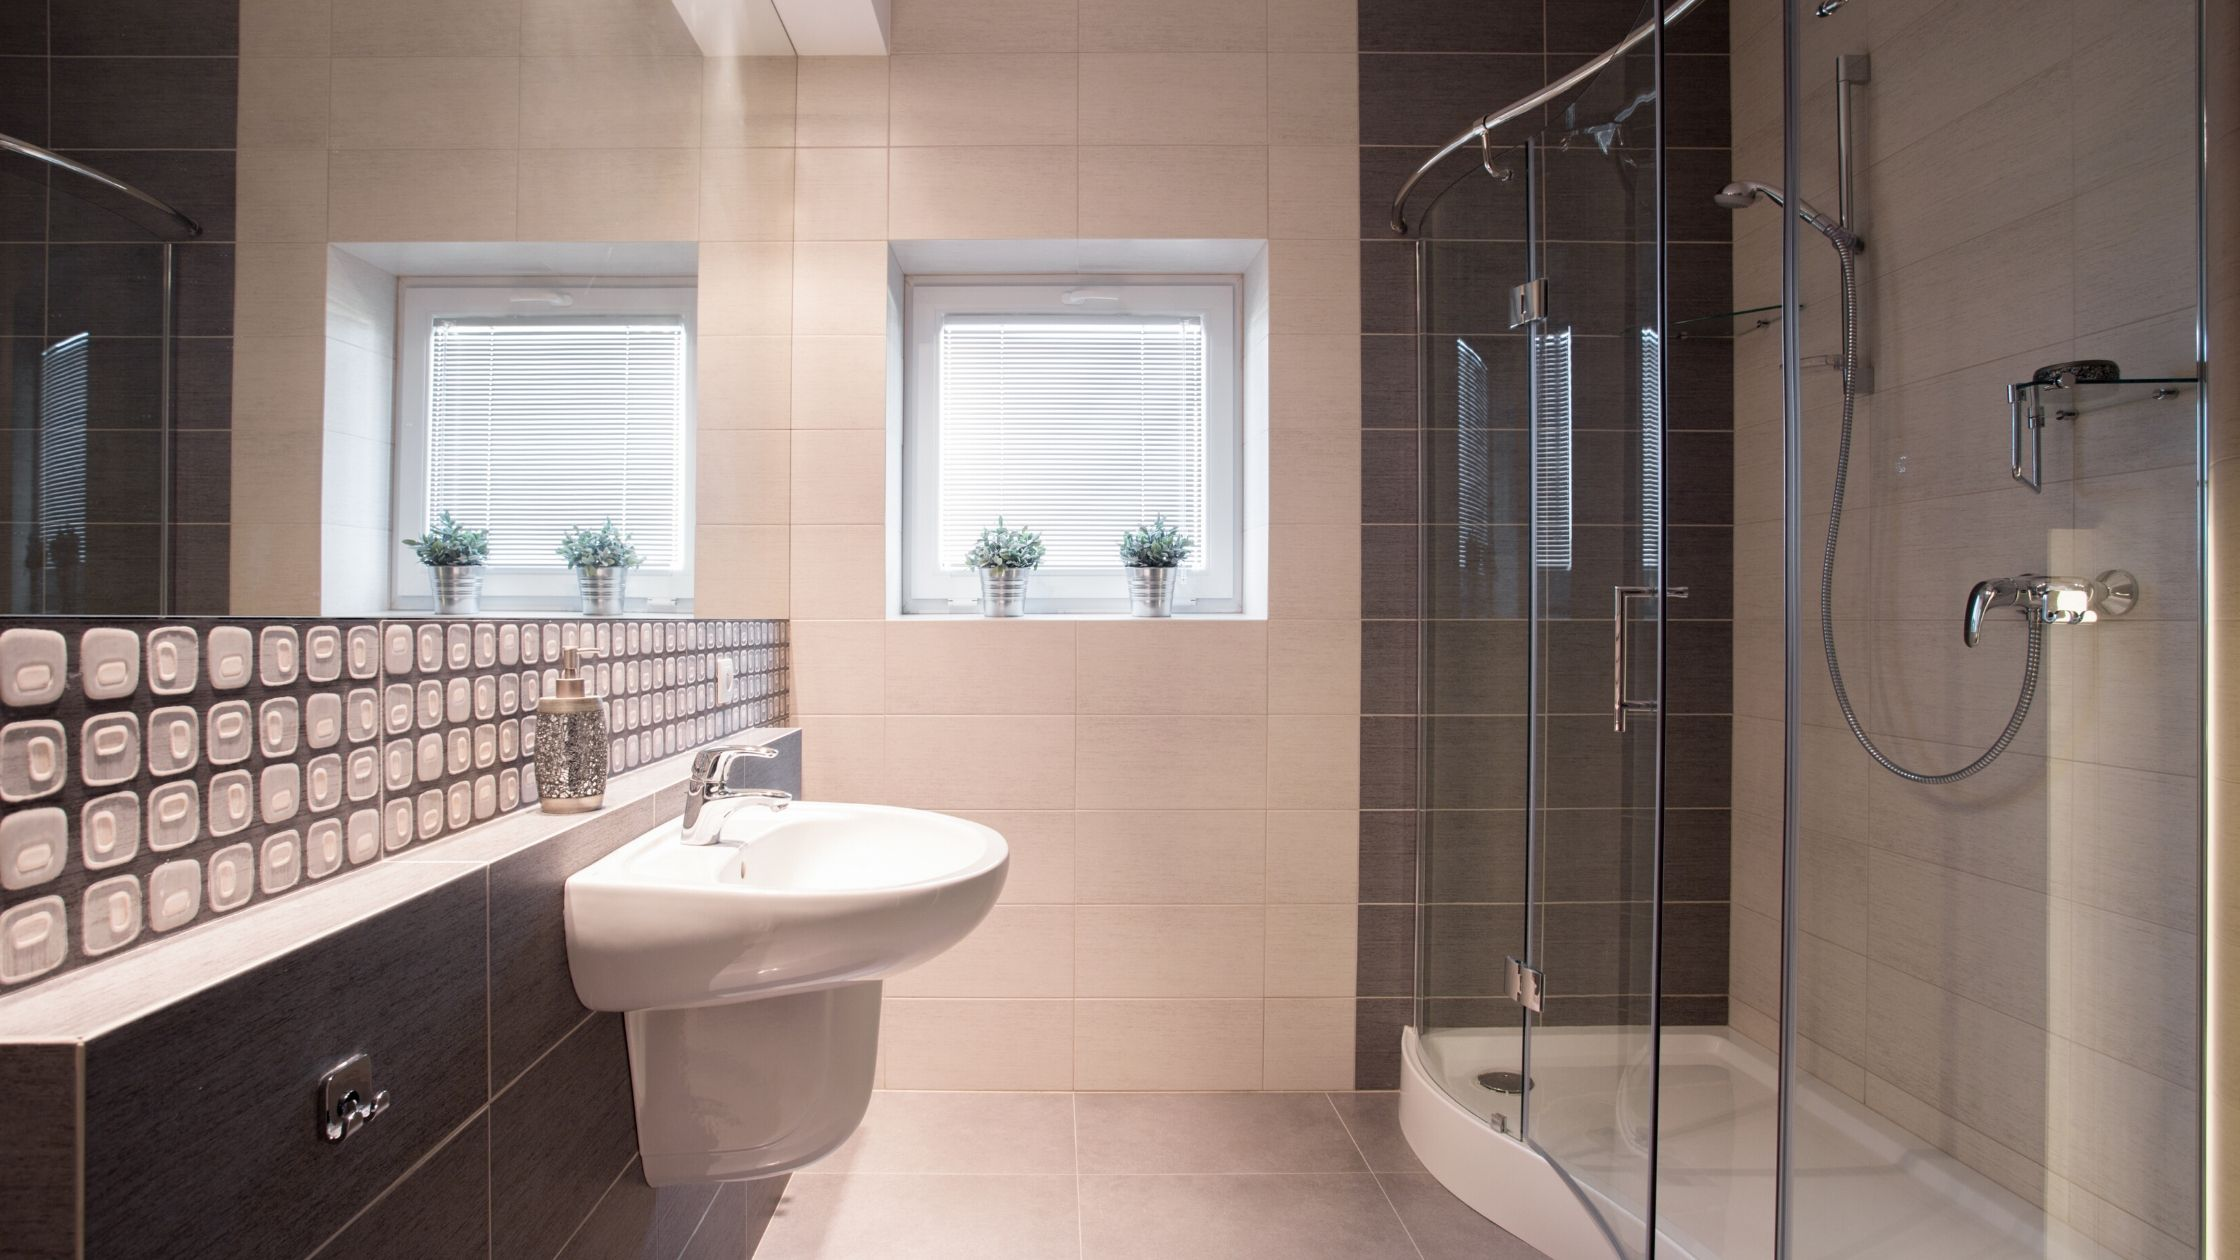 How To Select The Best Type Of Shower Enclosure For Your Bathroom